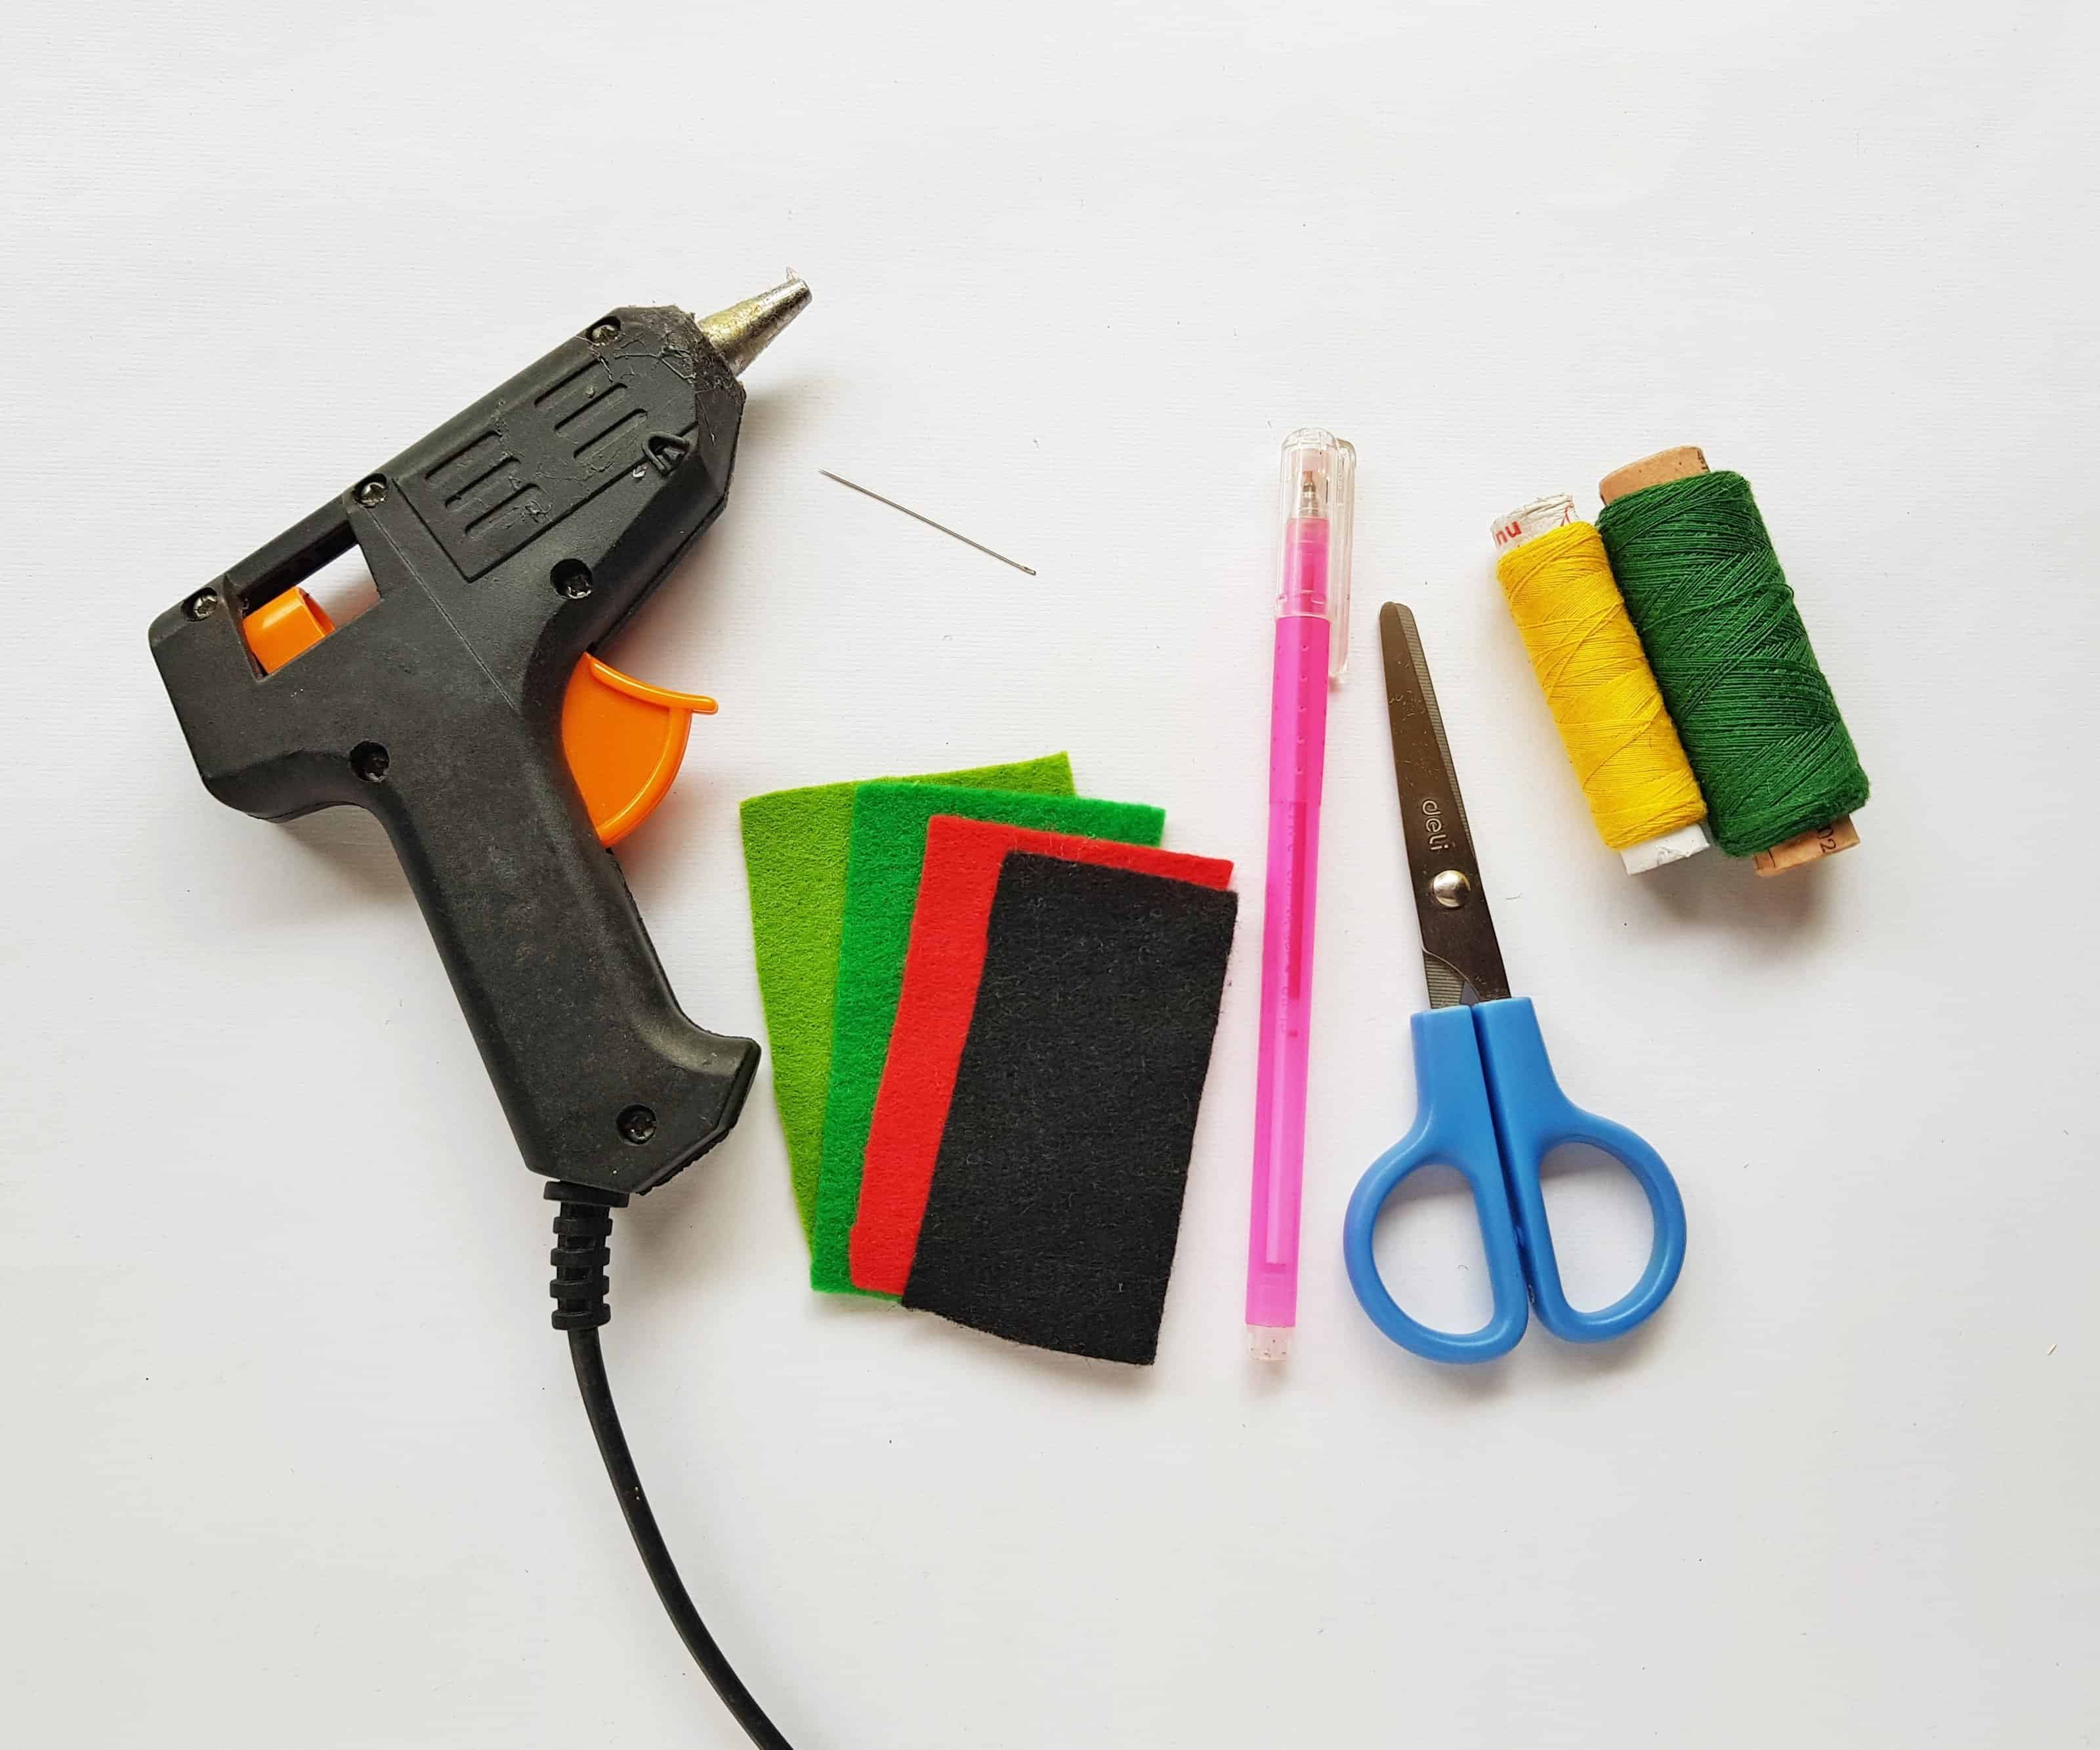 poppy craft supplies to make a pencil topper from felt